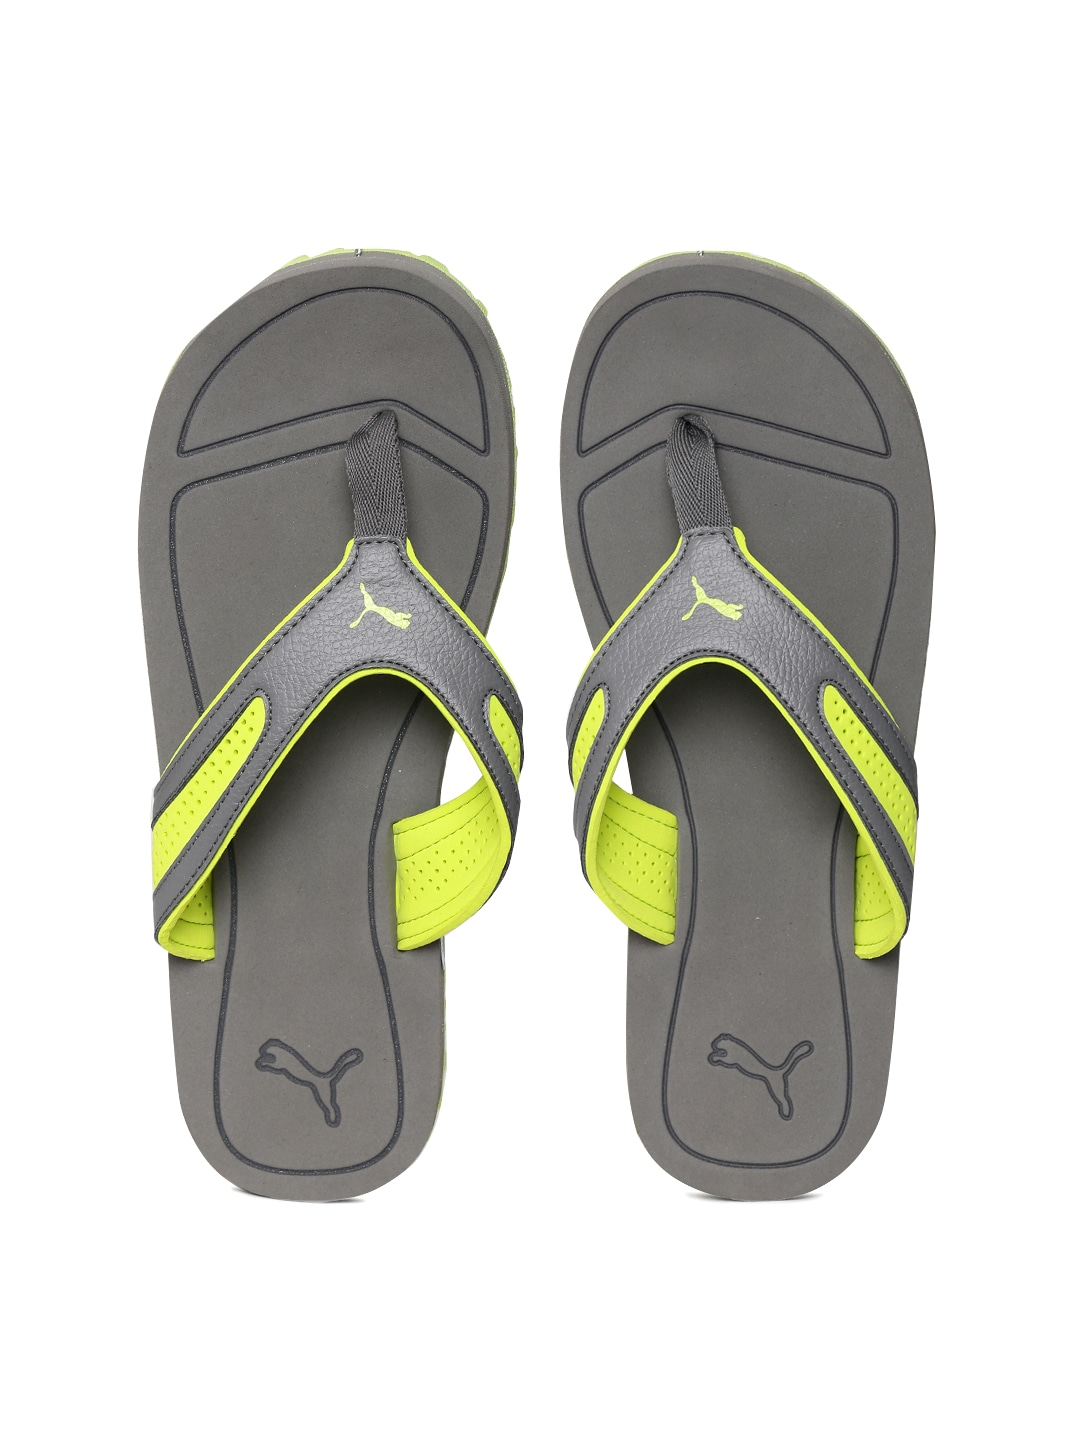 4a717c5ce4b561 Flip Flops for Men - Buy Slippers   Flip Flops for Men Online